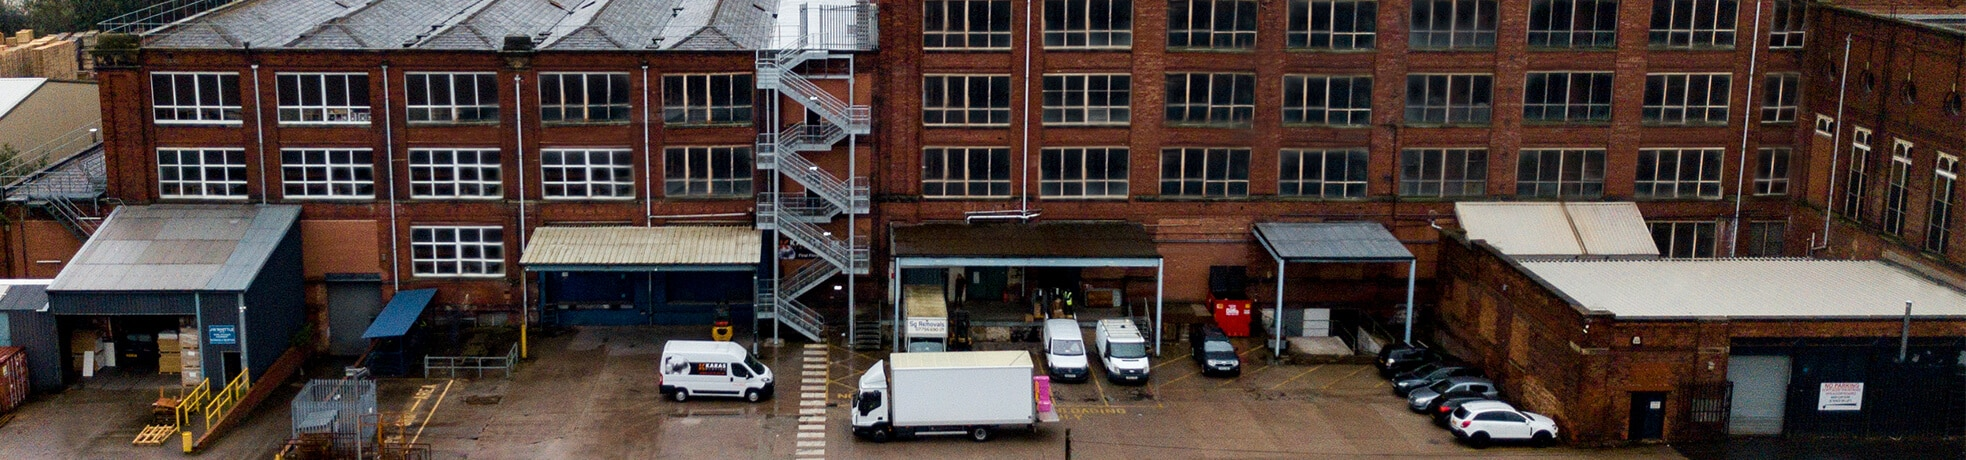 Delivering high quality plating solutions to British manufacturers